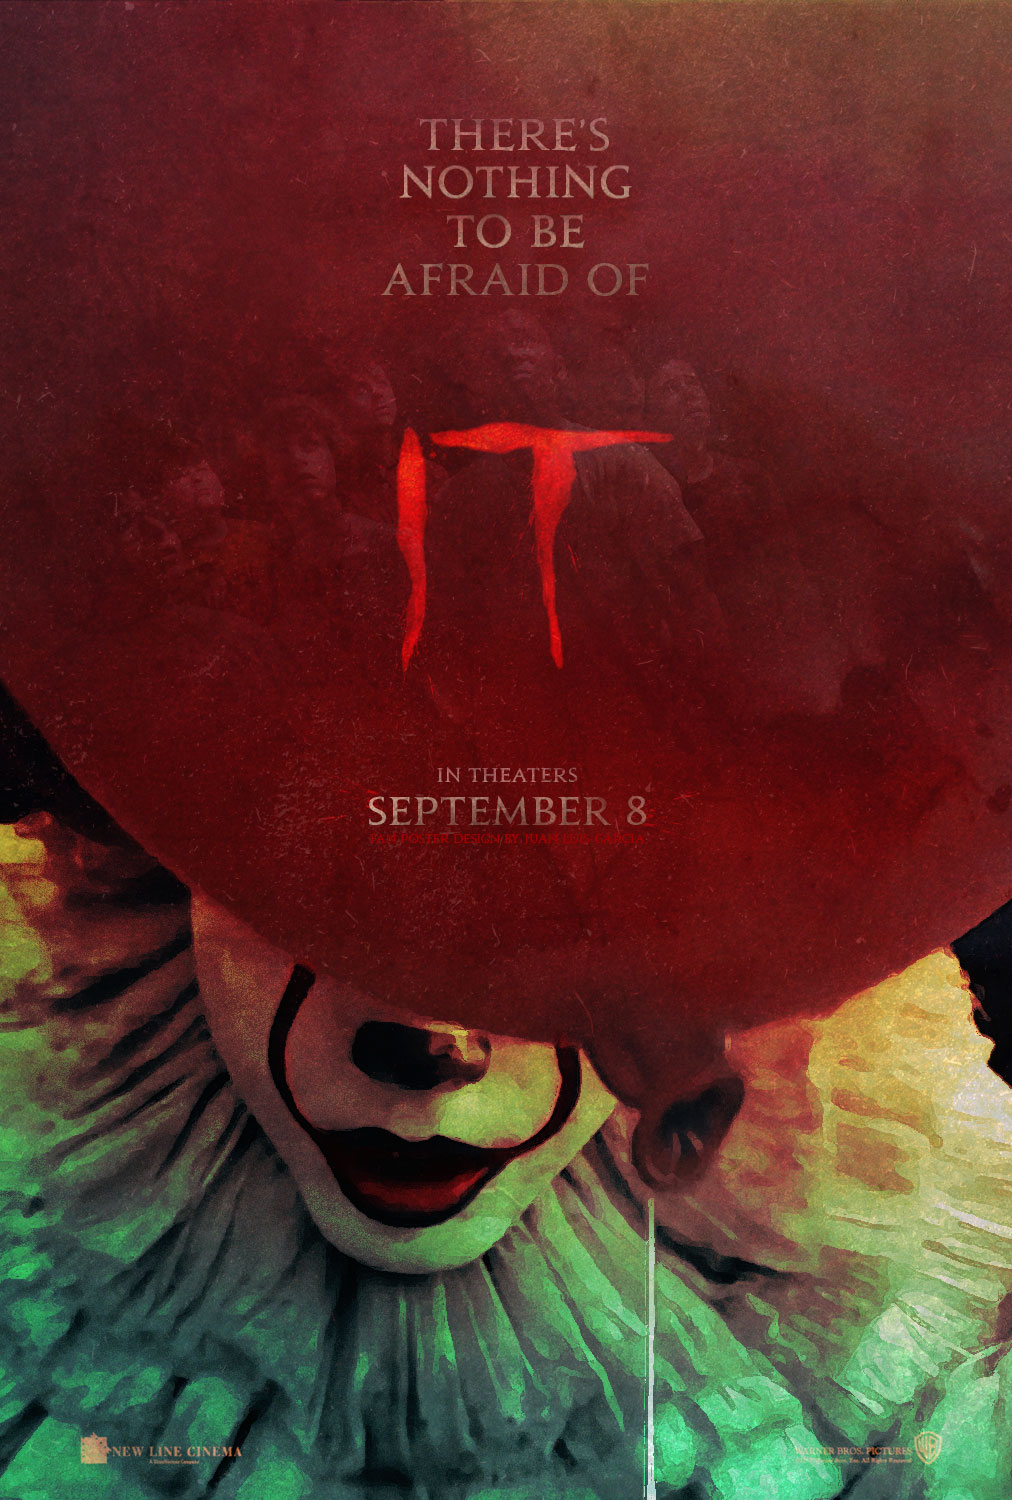 IT-Movie-Stephen-King-2017-Juan-Luis-Garcia-Movie-Poster-Design-01.jpg